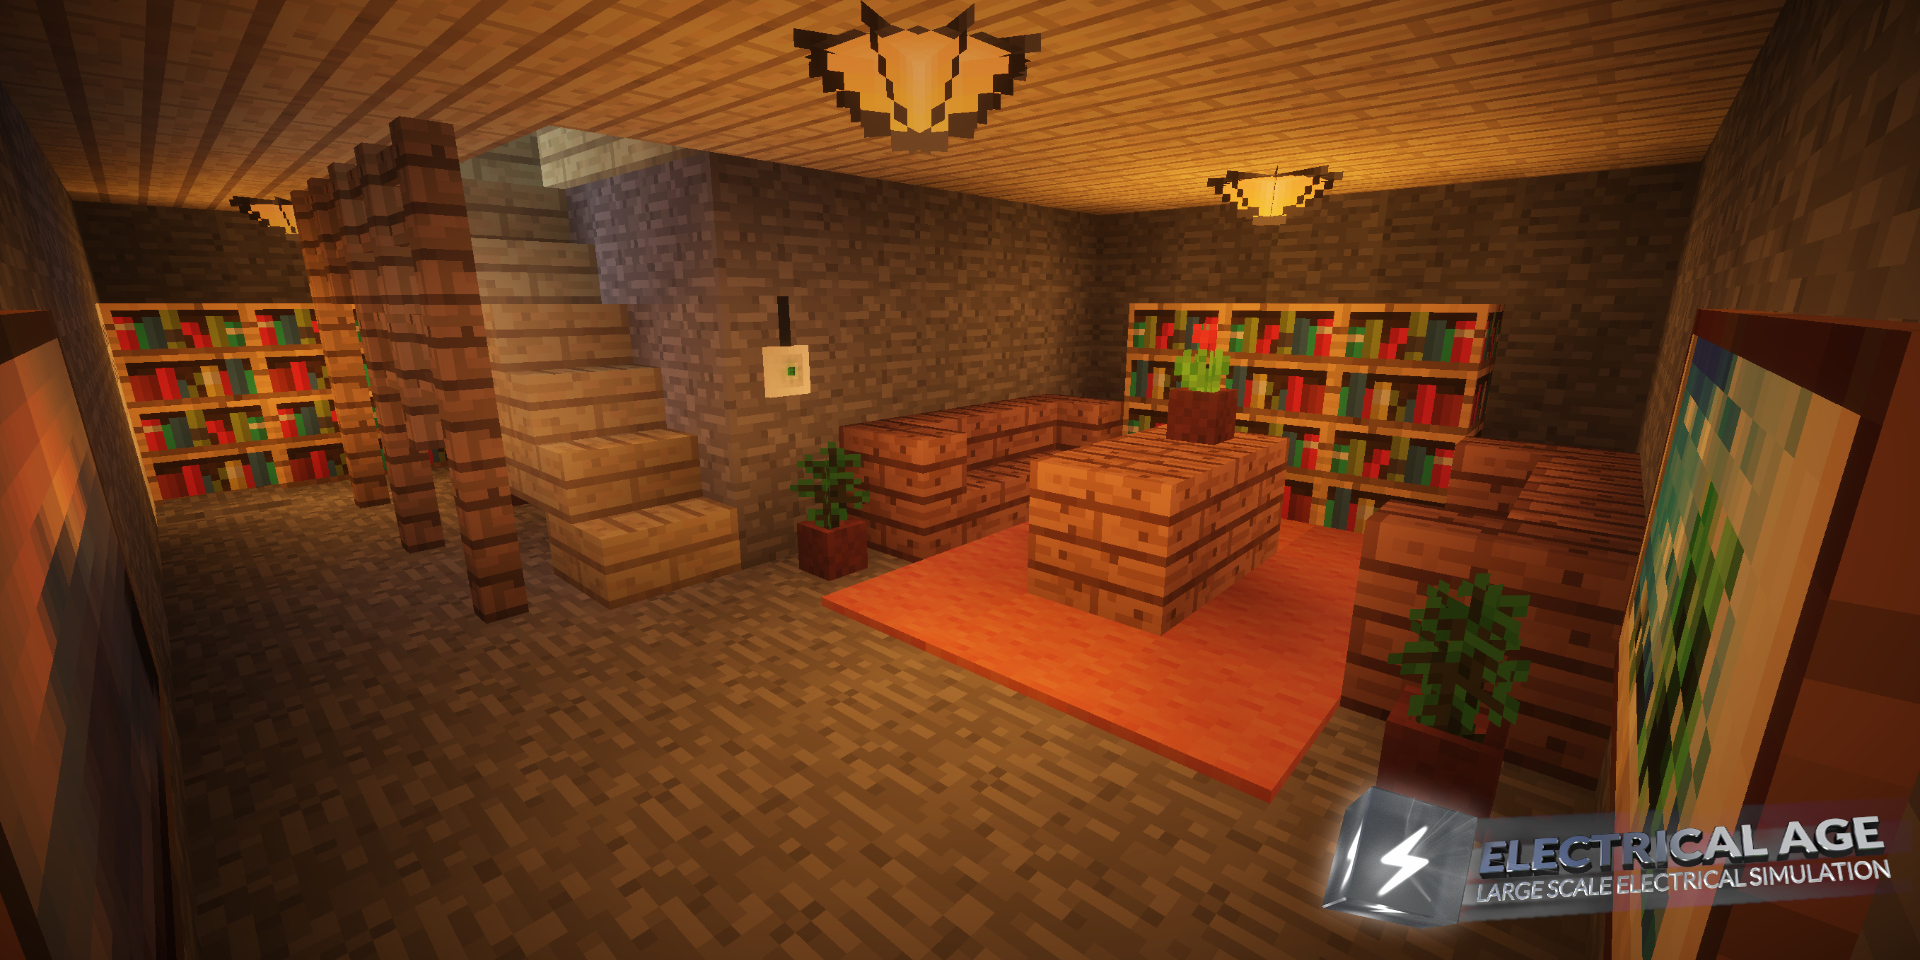 Electrical Age The Minecraft Mod Eln